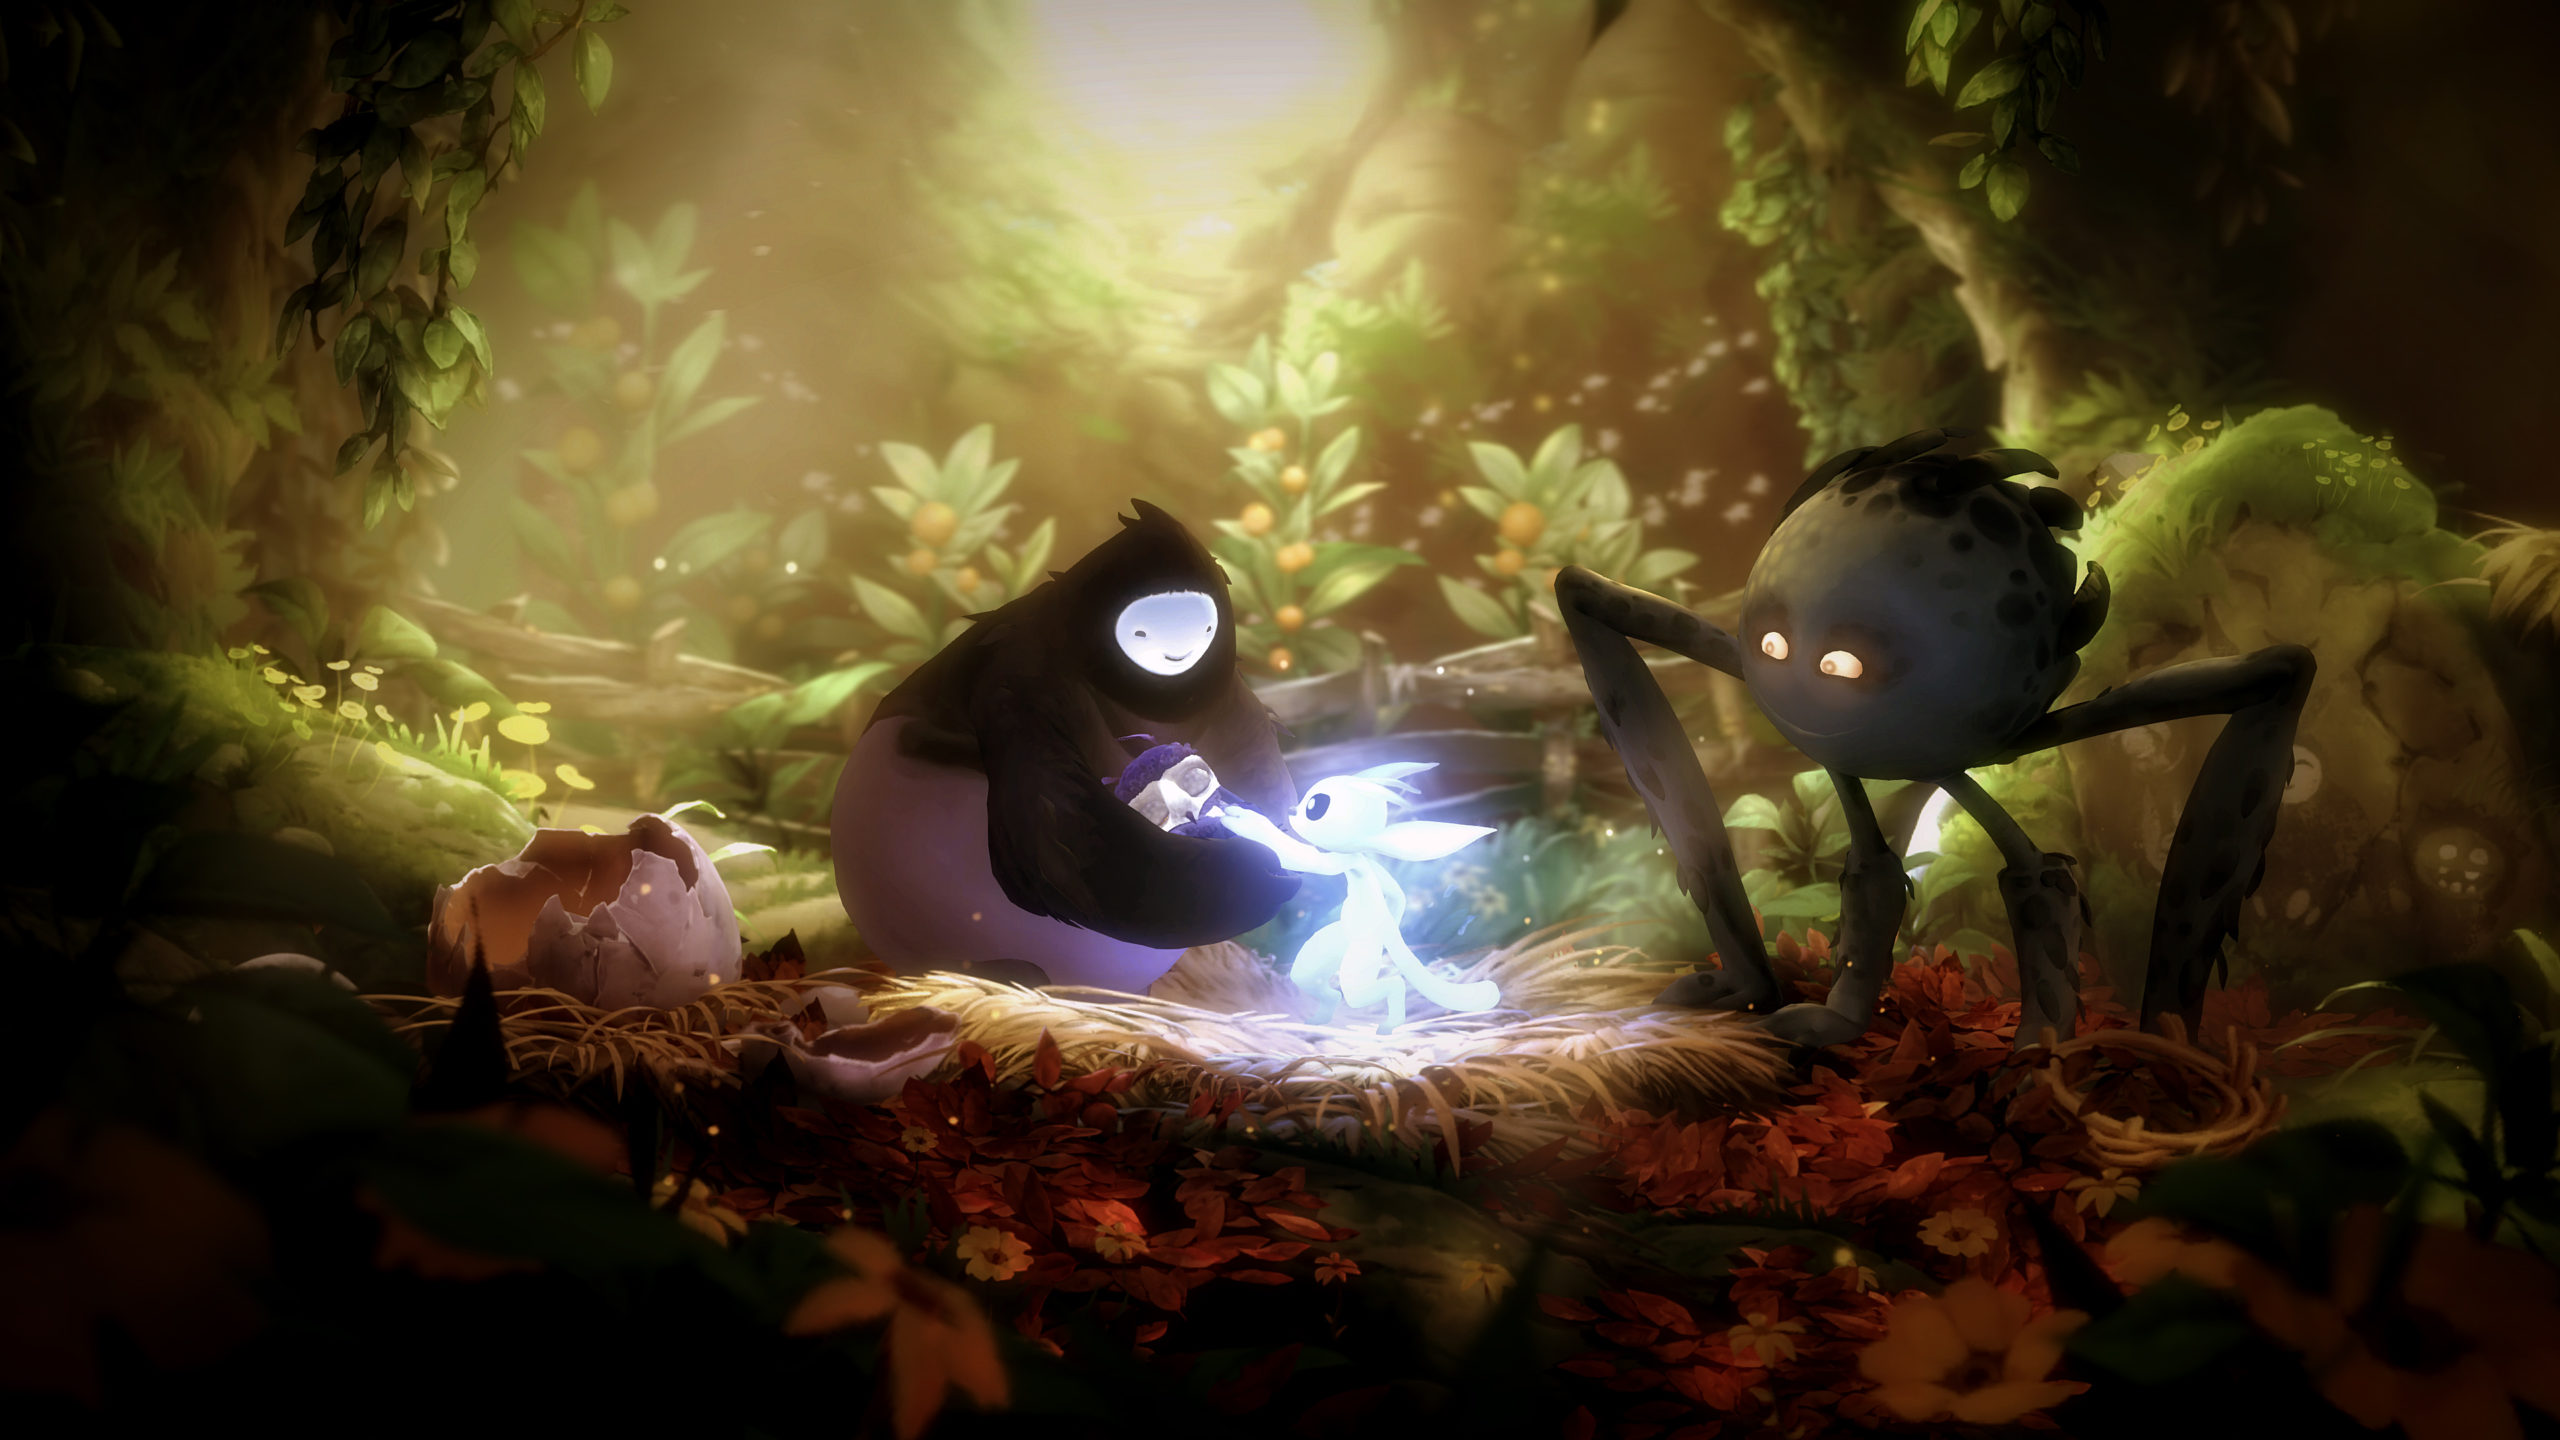 Ori and the Will of the Wisps Concept Art